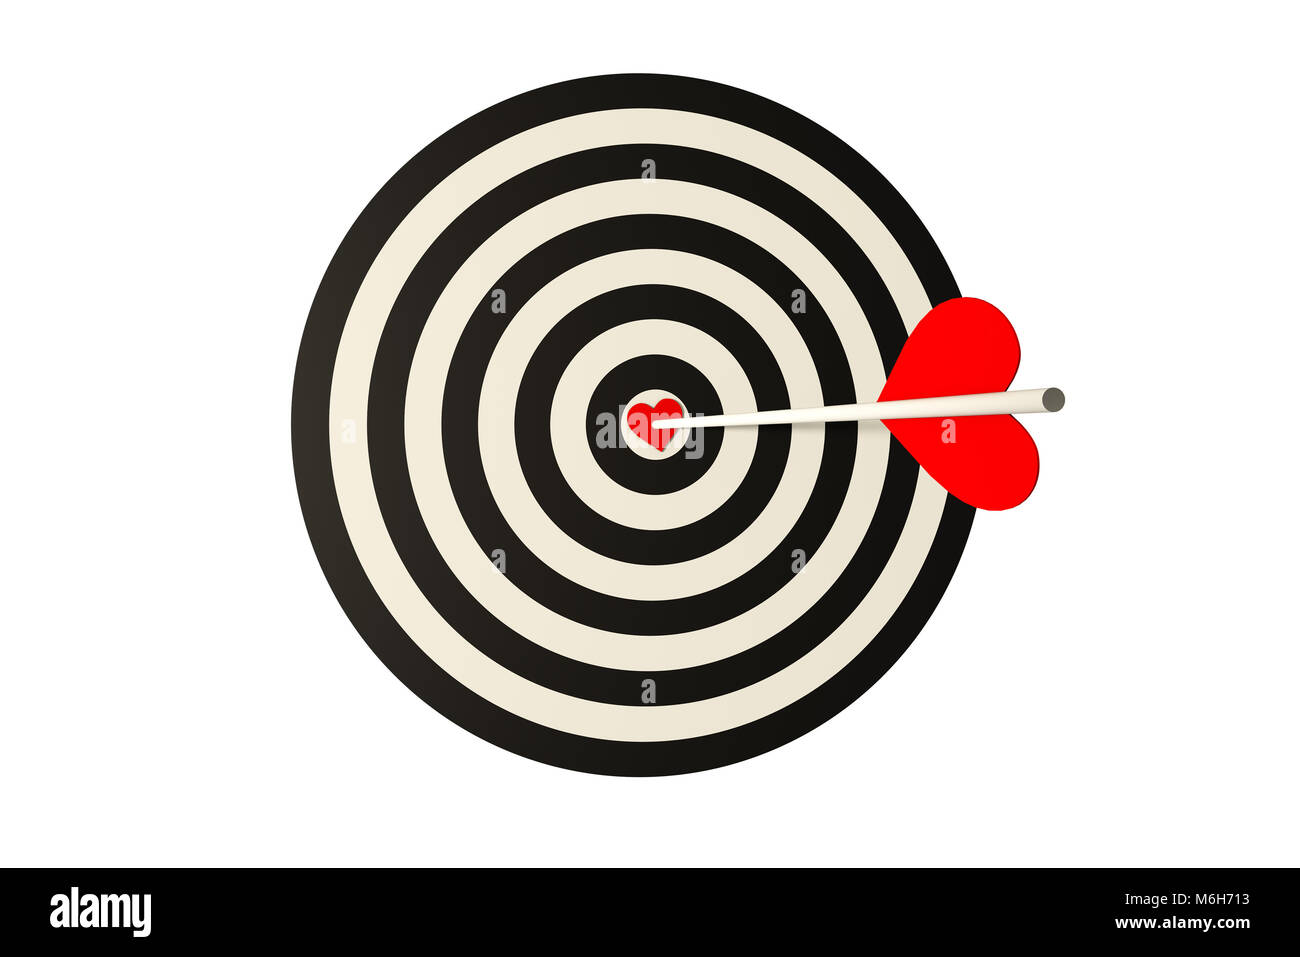 Bullseye archery cut out stock images pictures alamy heart bow currency symbol and red heart stock image thecheapjerseys Gallery